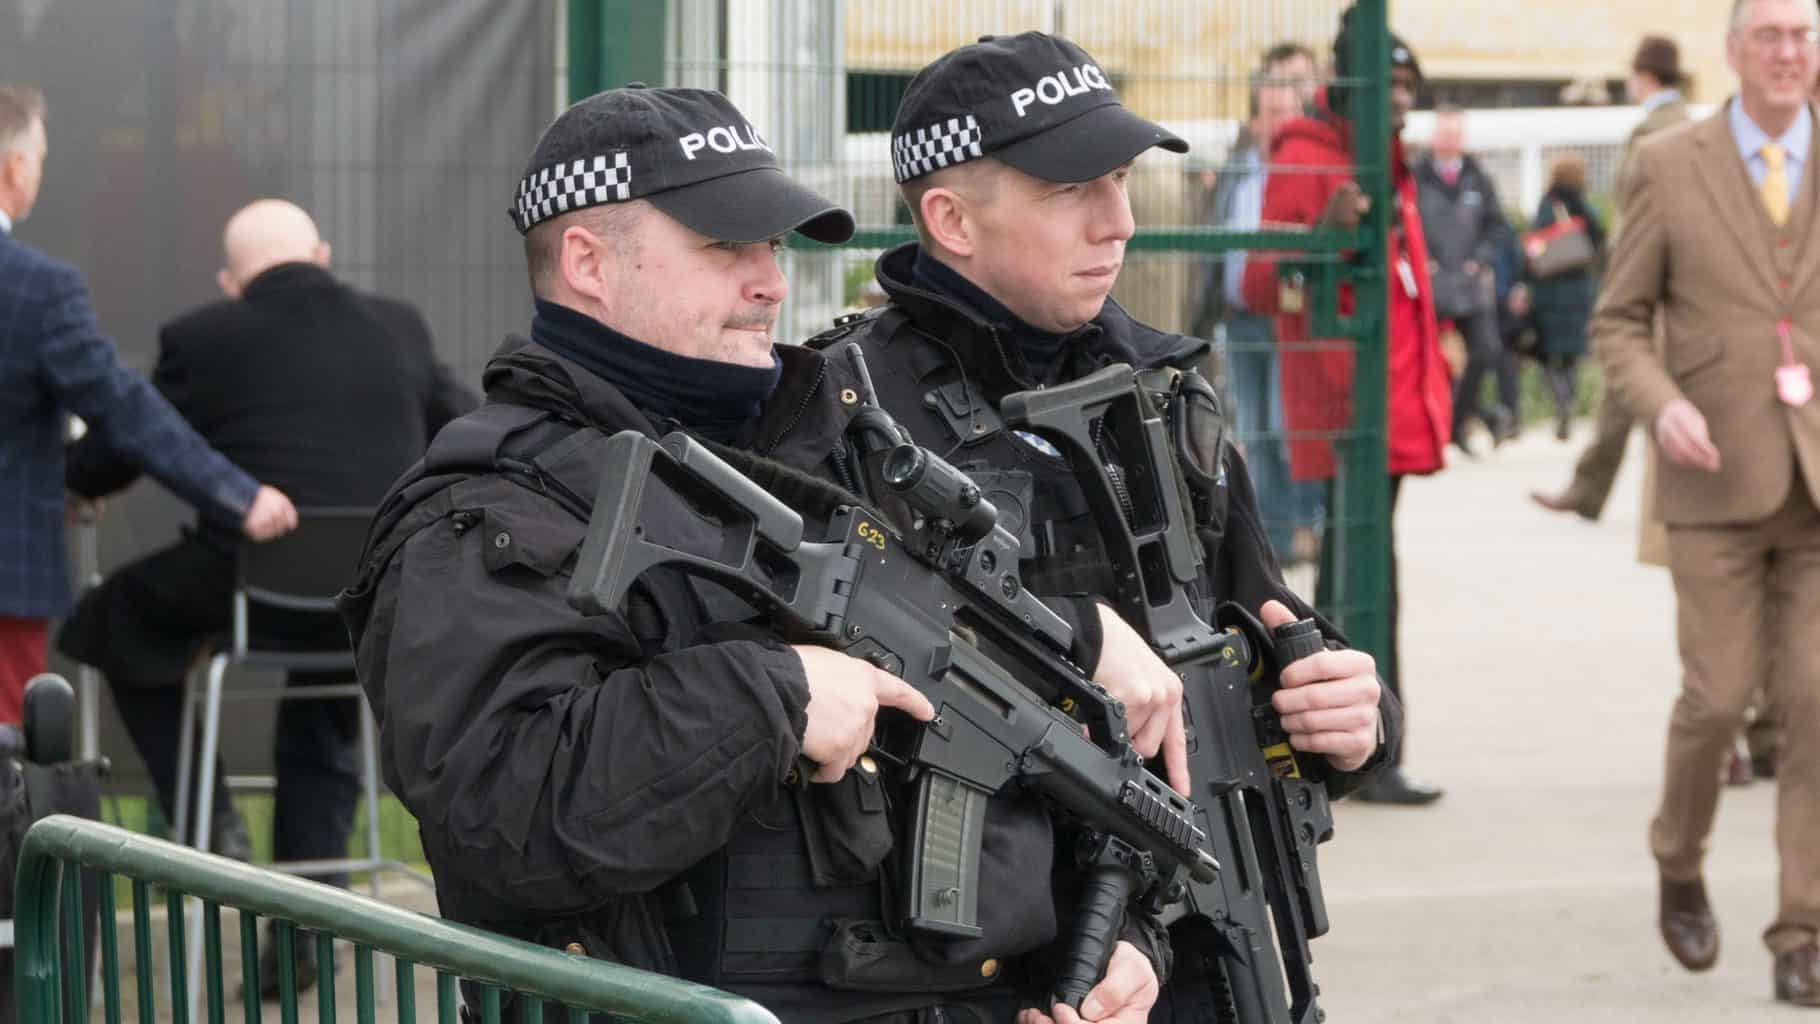 Firearm police in training patrolling Lancashire today